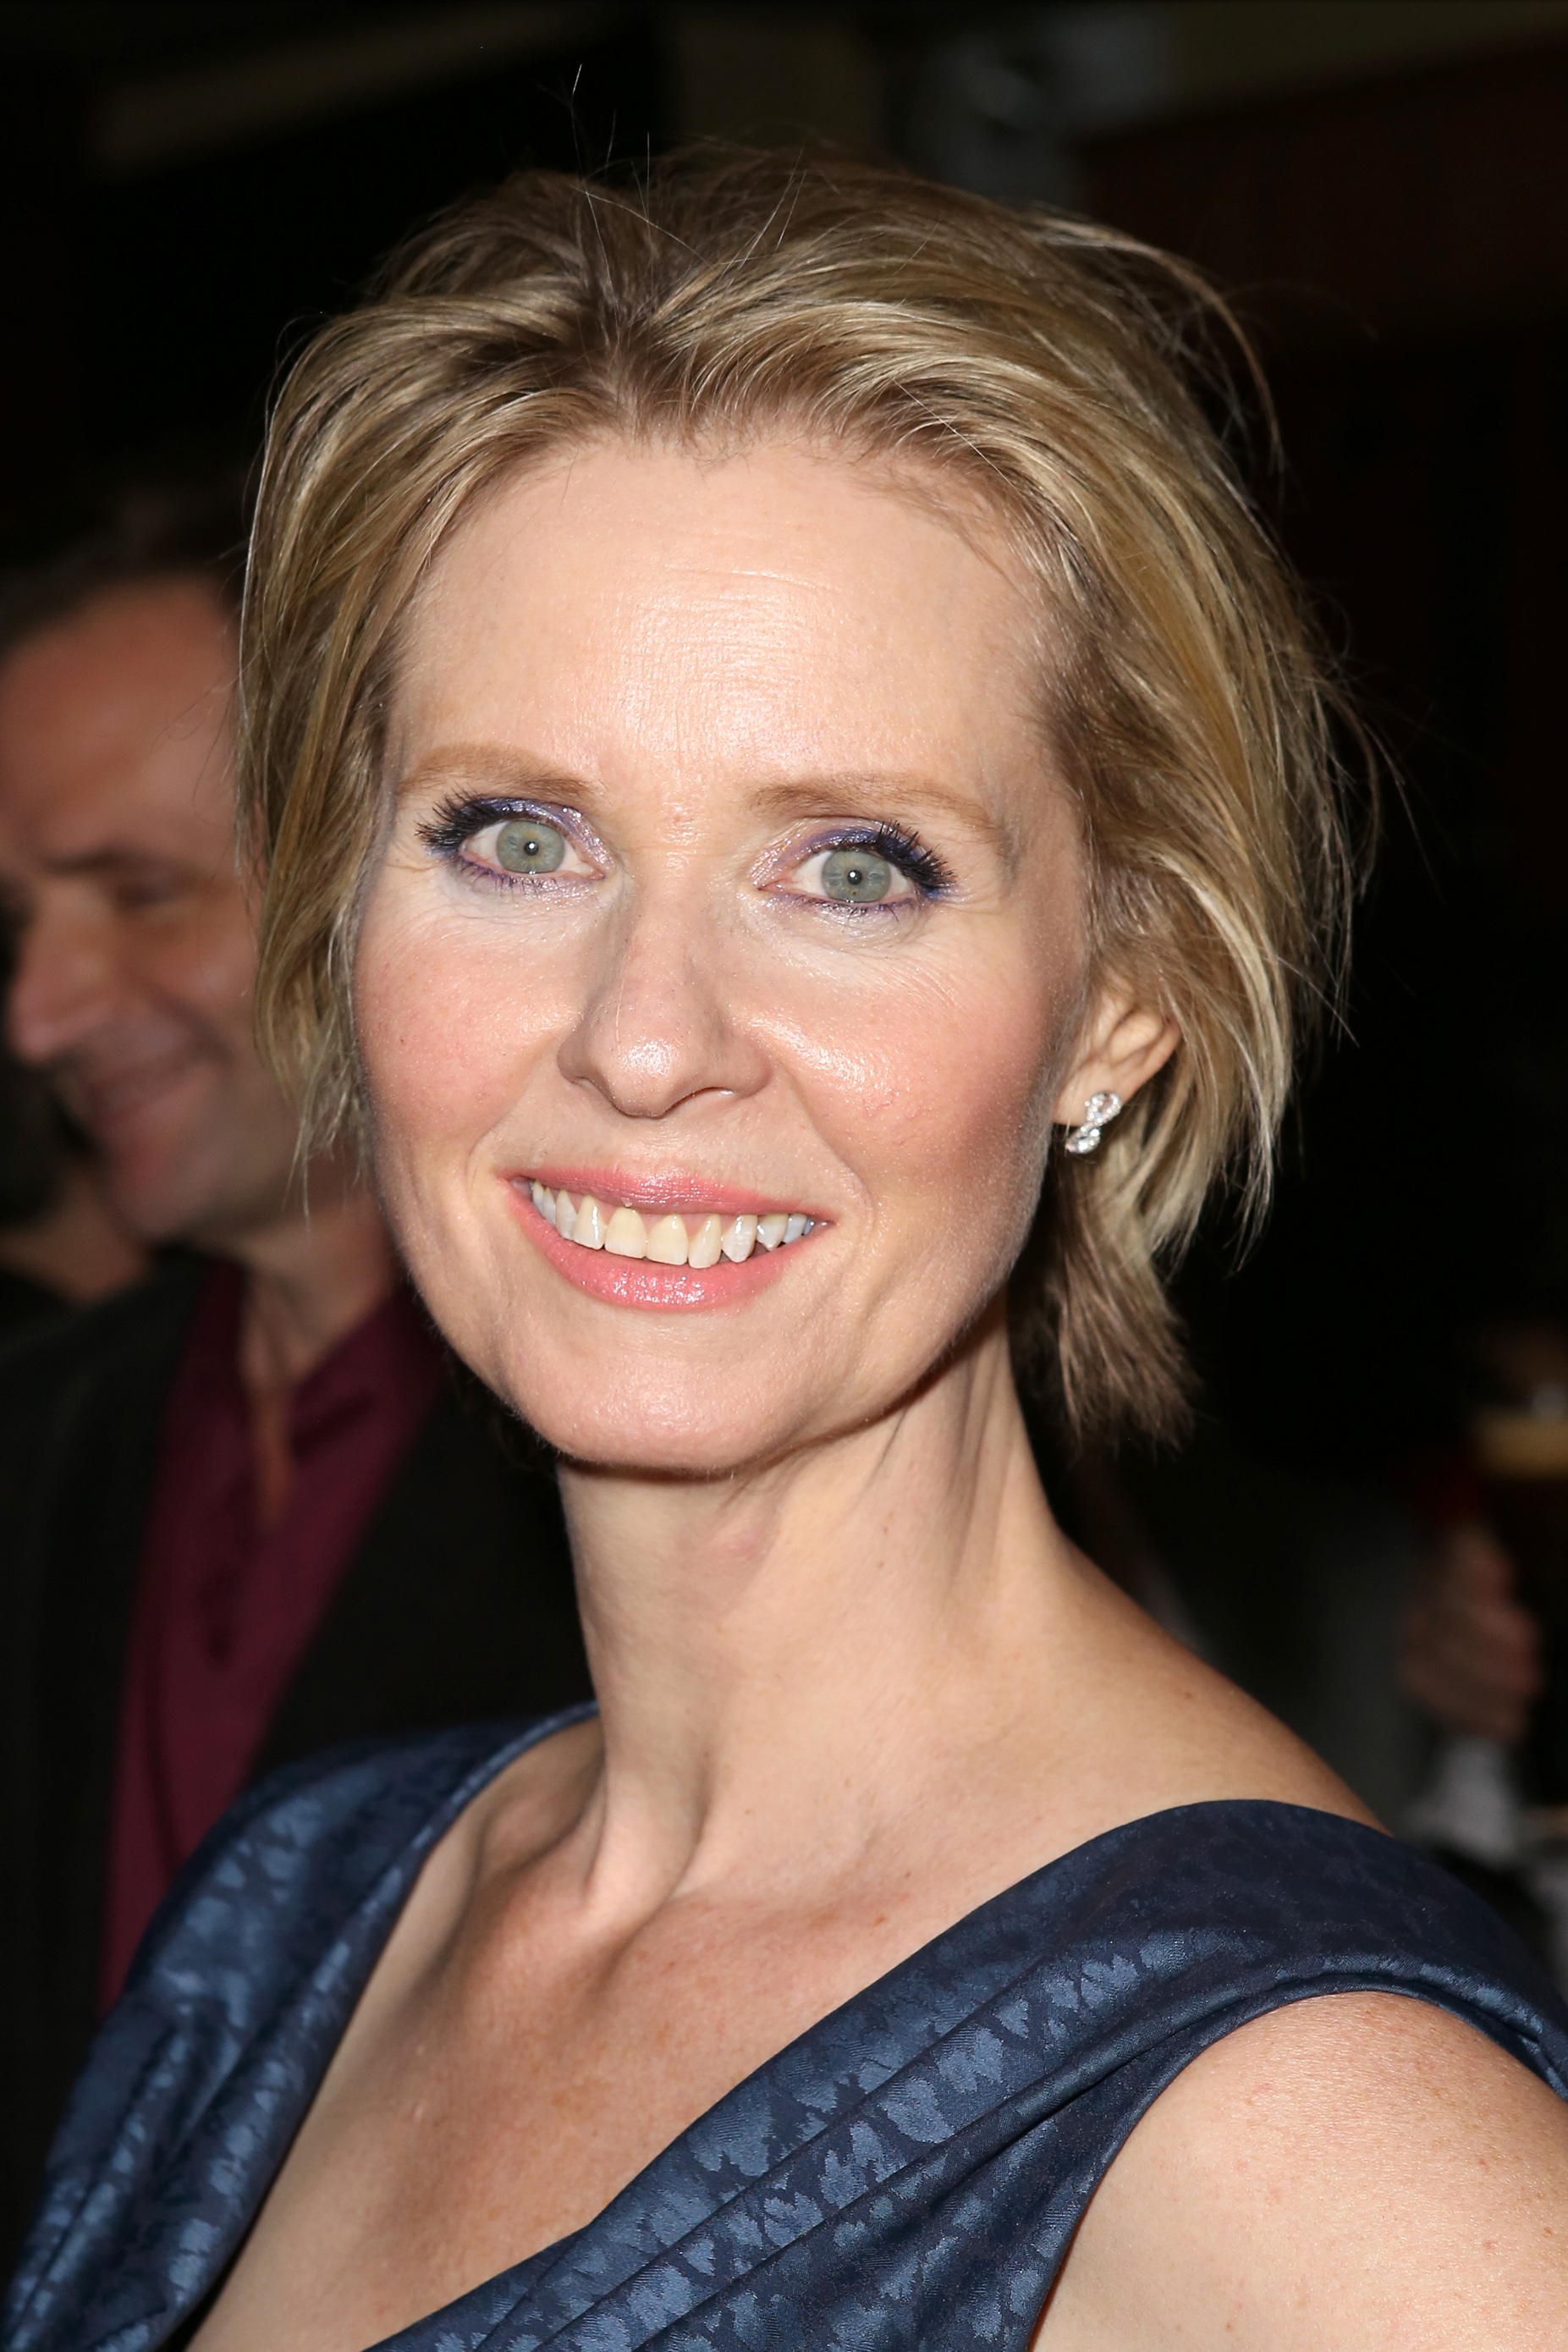 Cynthia Nixon attends the Opening Night Party for the New Group production of 'Steve' at the West Bank Cafe in New York City on Nov. 18, 2015.